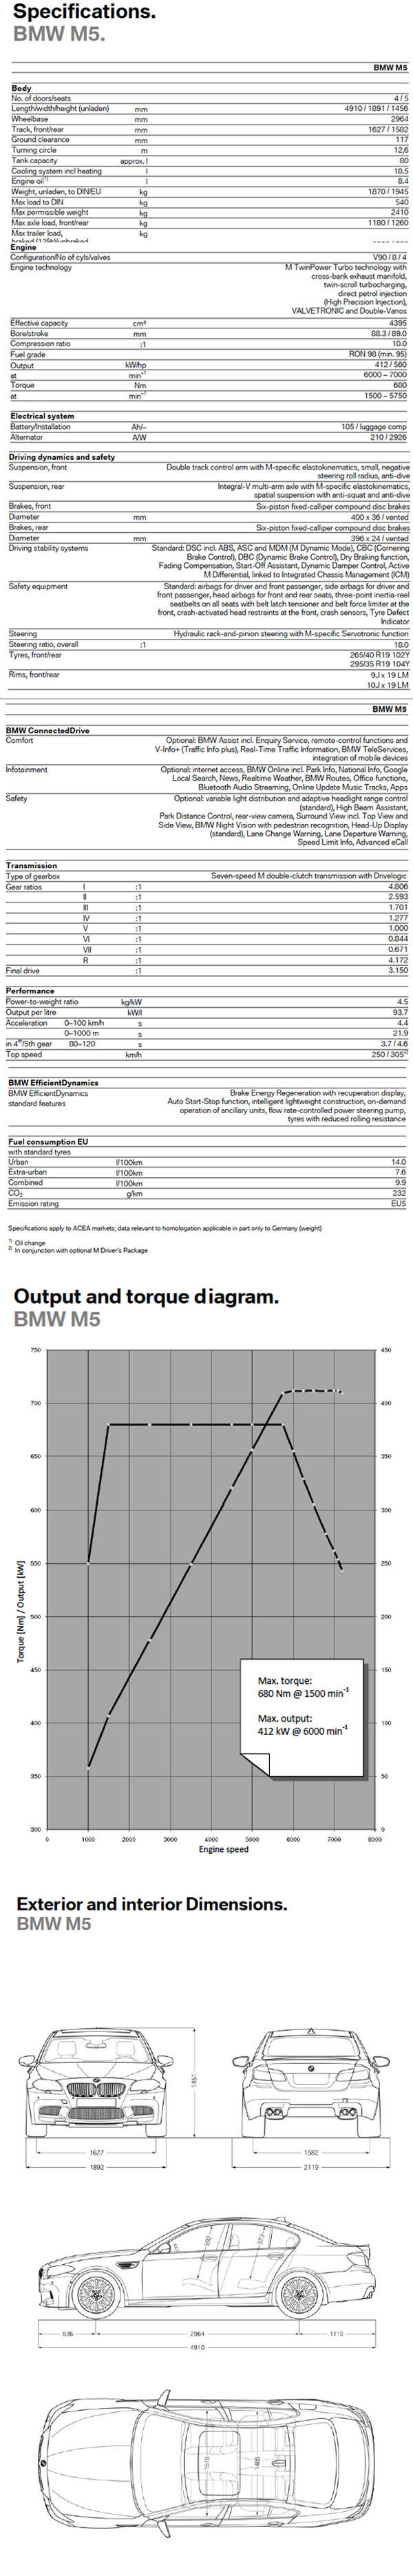 2012 BMW M5 spec sheet